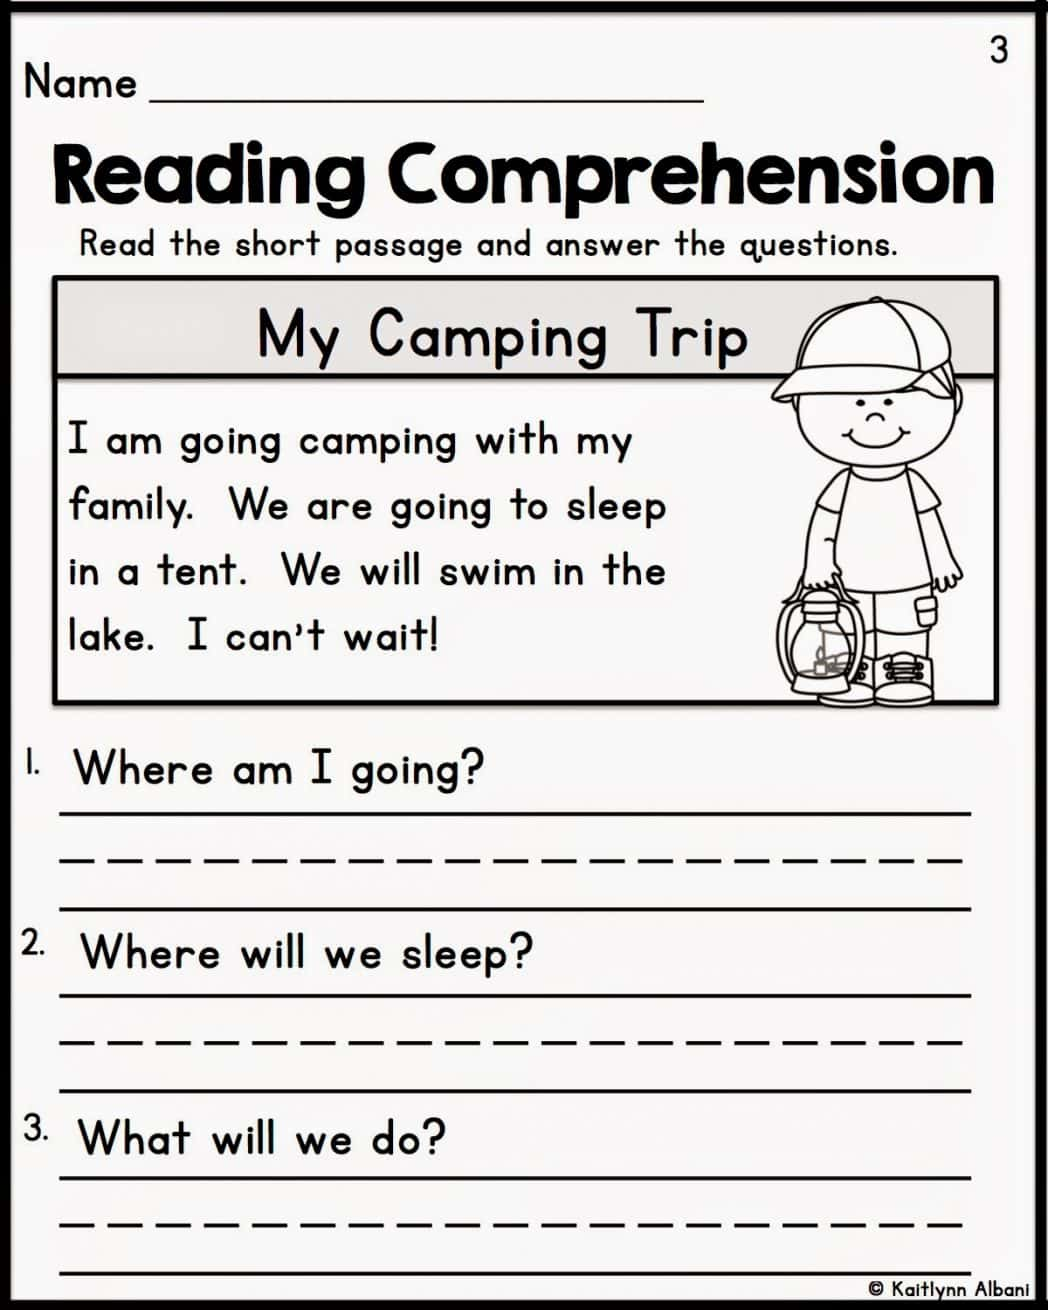 Comprehension Passages For Grade 1 Free Worksheets And Short Stories For First Graders